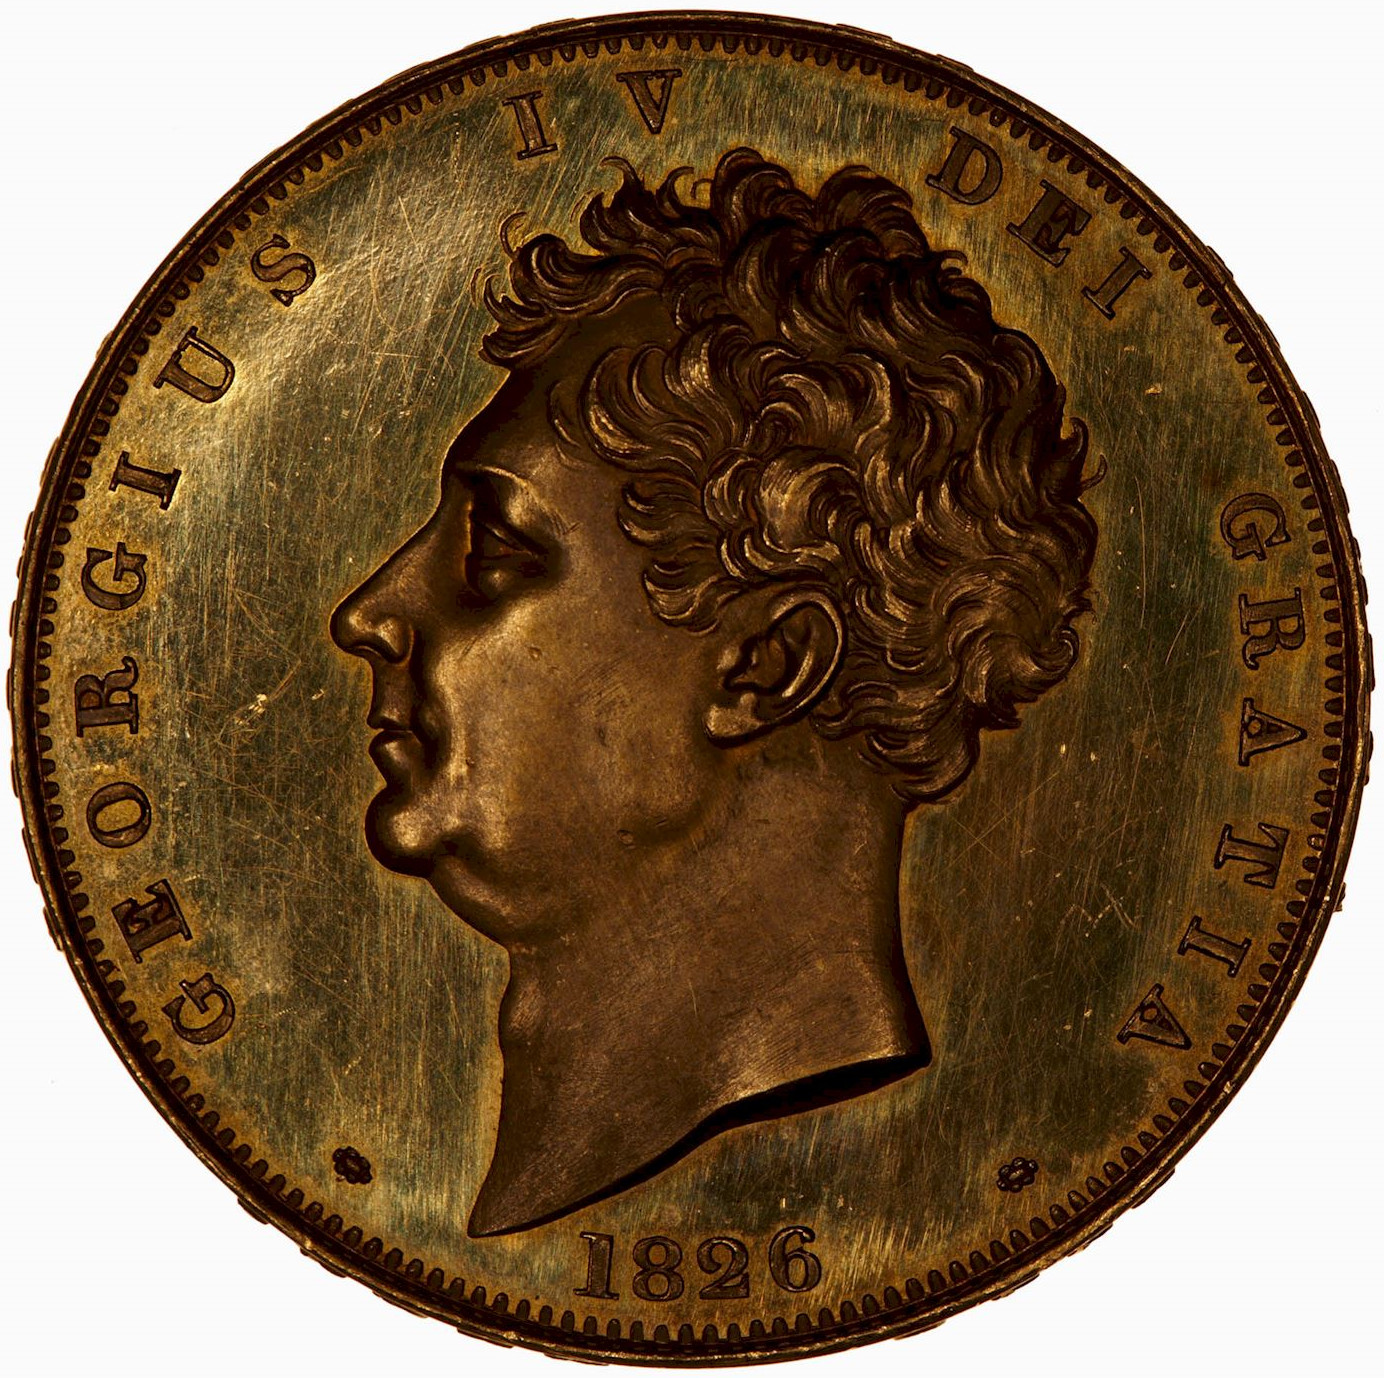 Five Pounds (Pre-decimal): Photo Coin - 5 Pounds, George IV, Great Britain, 1826